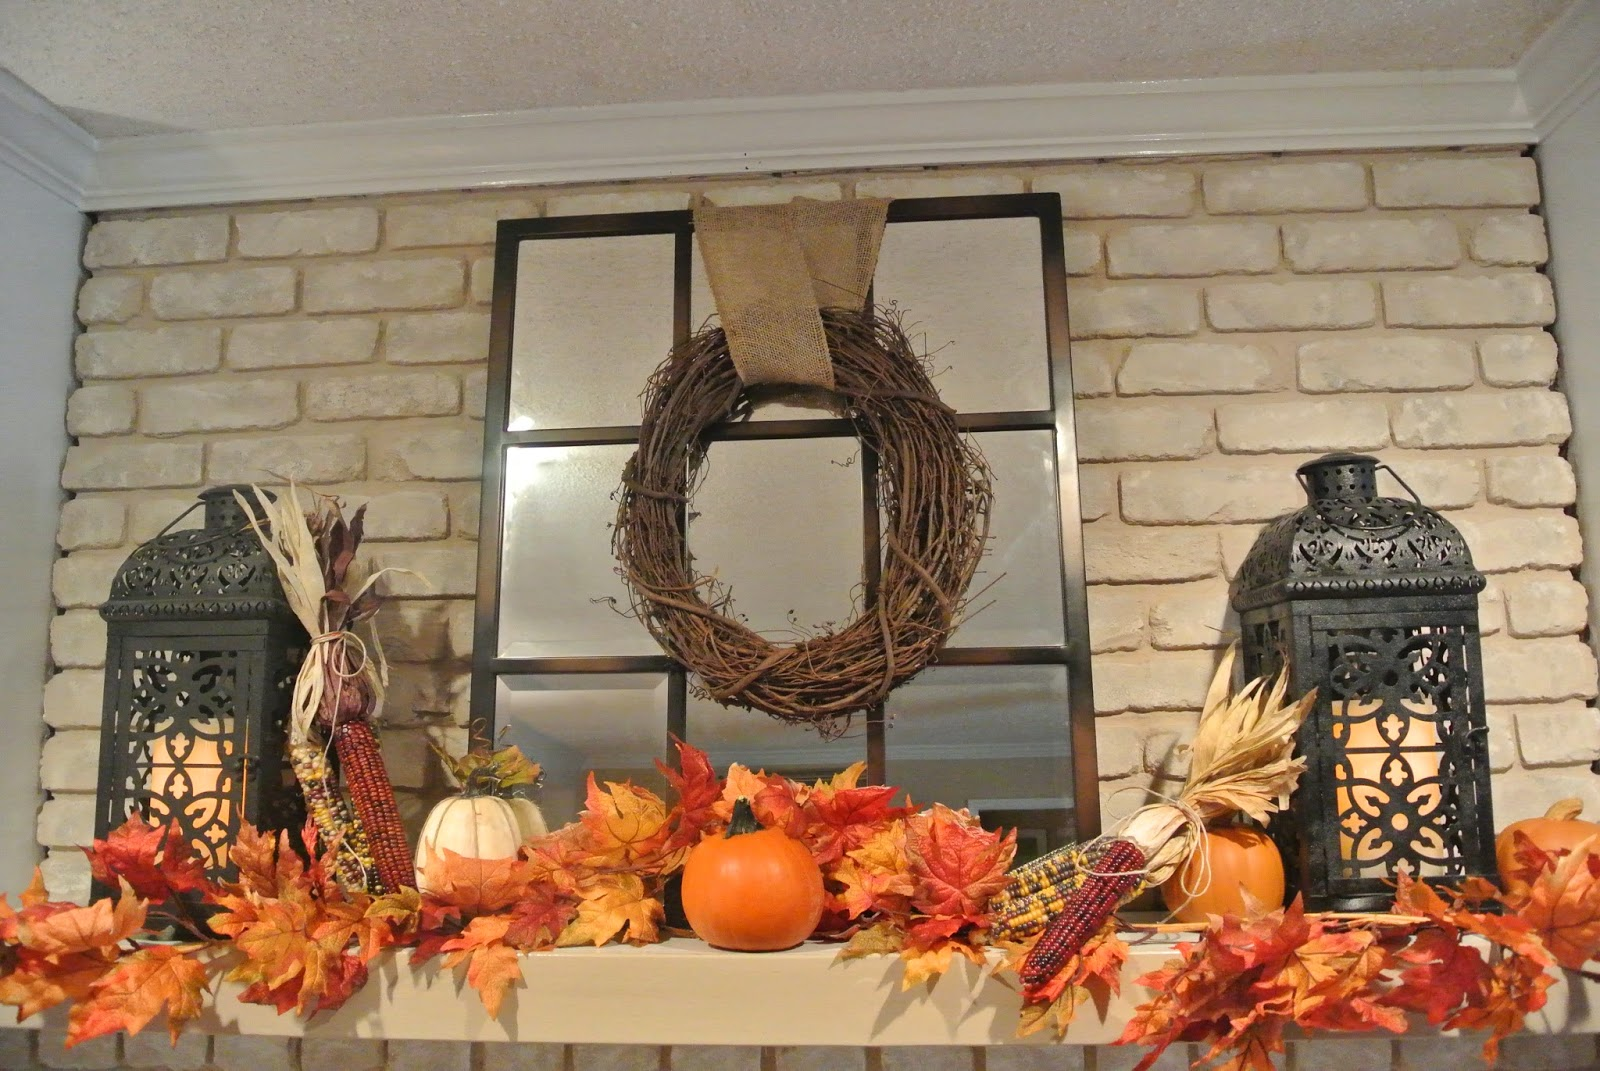 Fireplace Decorating: Decorate A Mantel For Fall